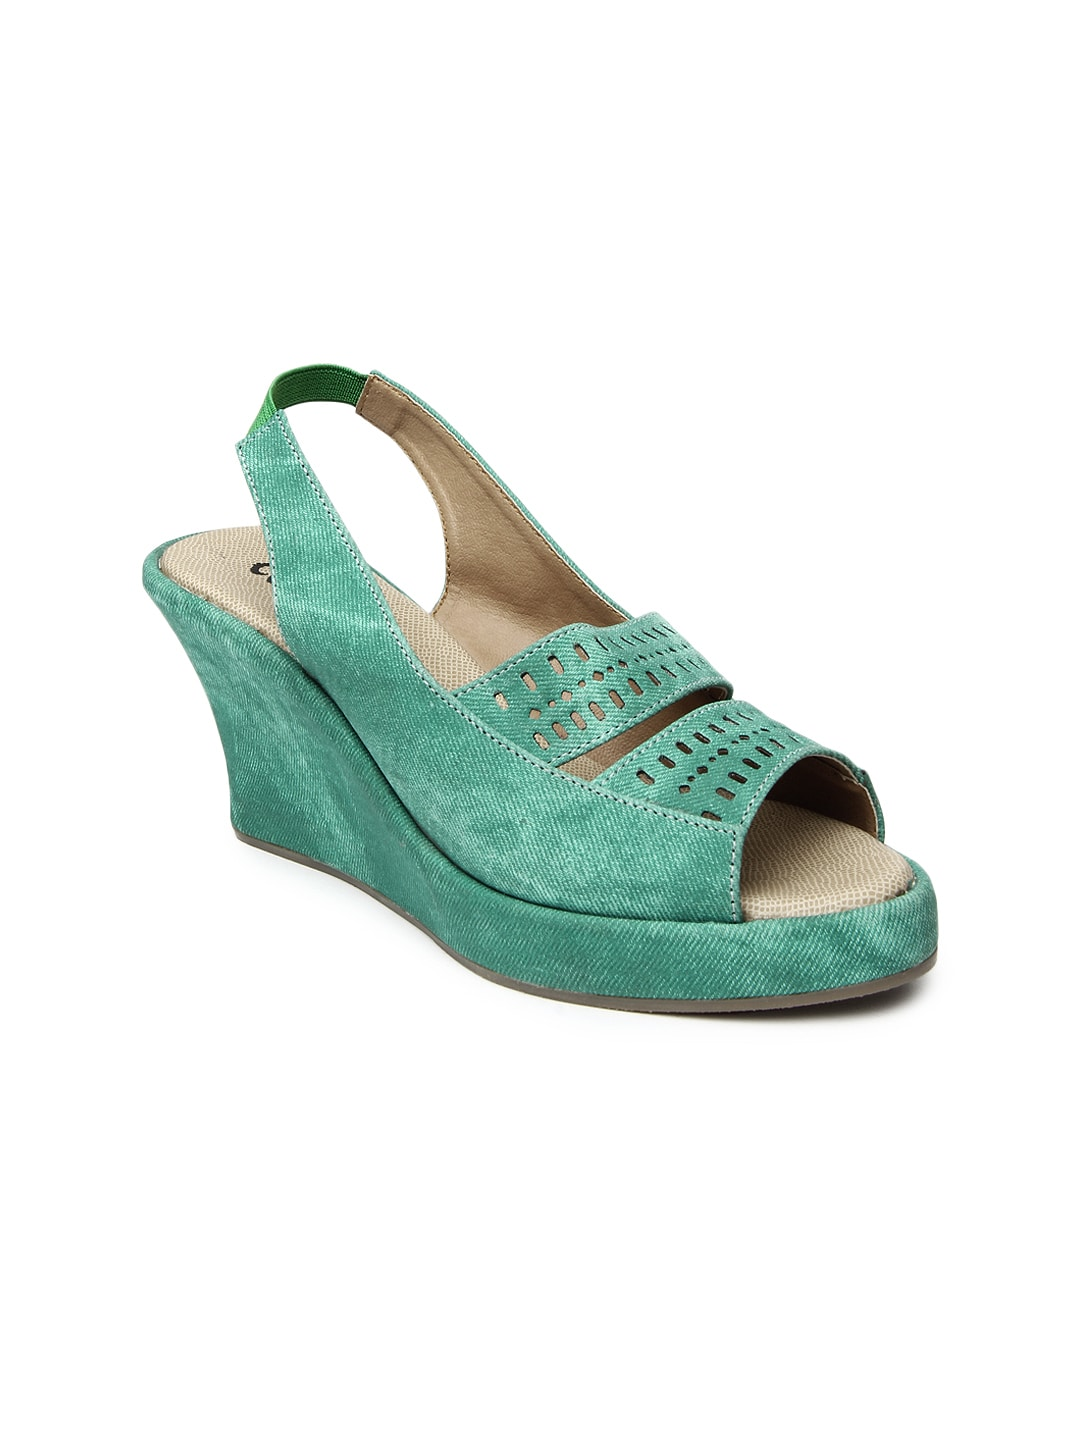 Cocoon Women Green Wedges